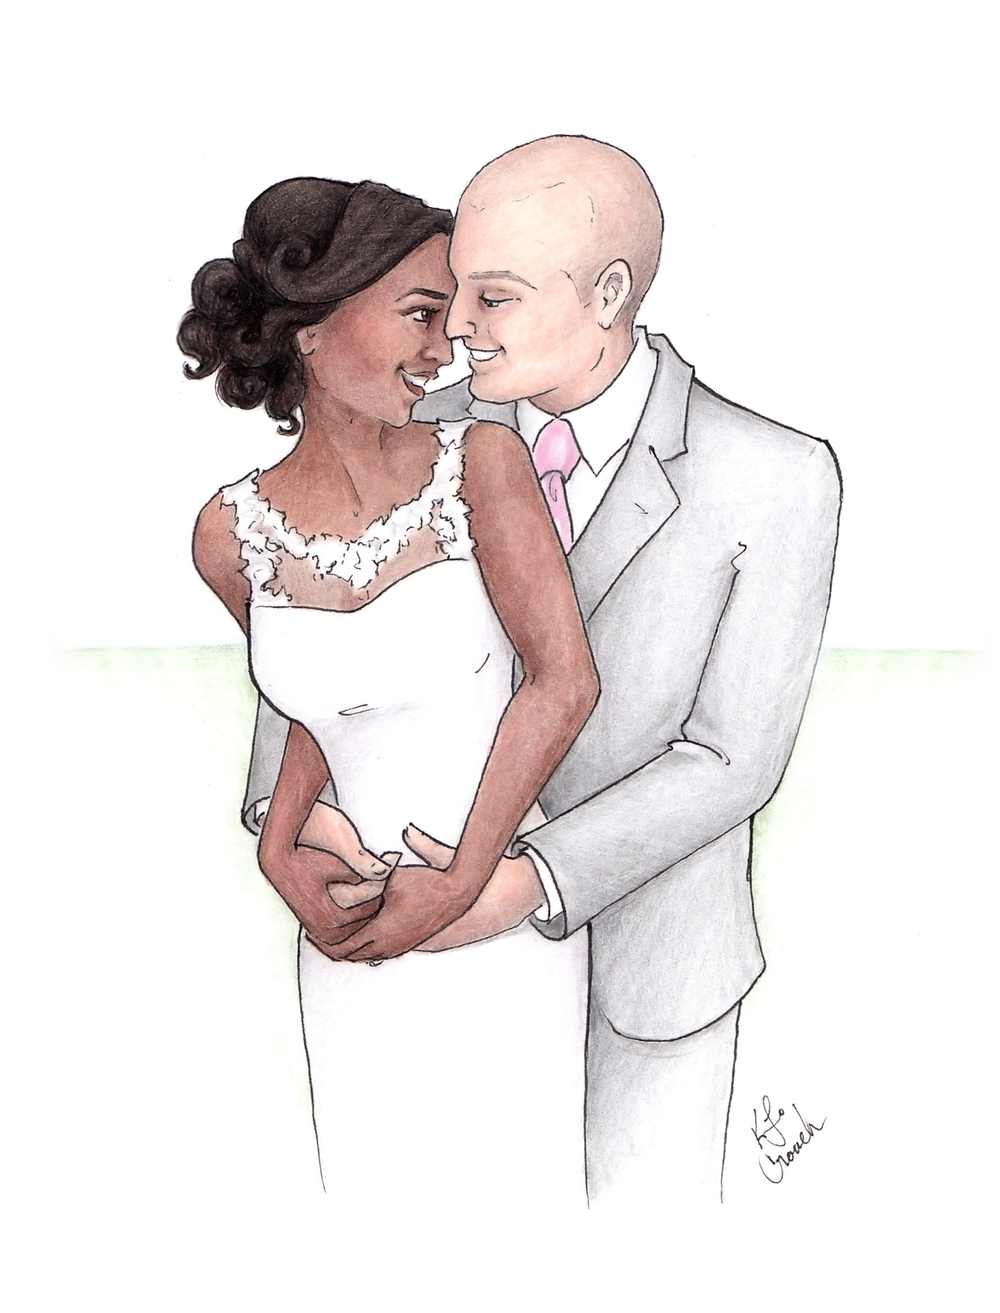 Custom watercolor bridal portrait. Fine art bridal portrait for a unique anniversary gift. #customportrait #portraitillustration #blusheddesign #watercolorportrait